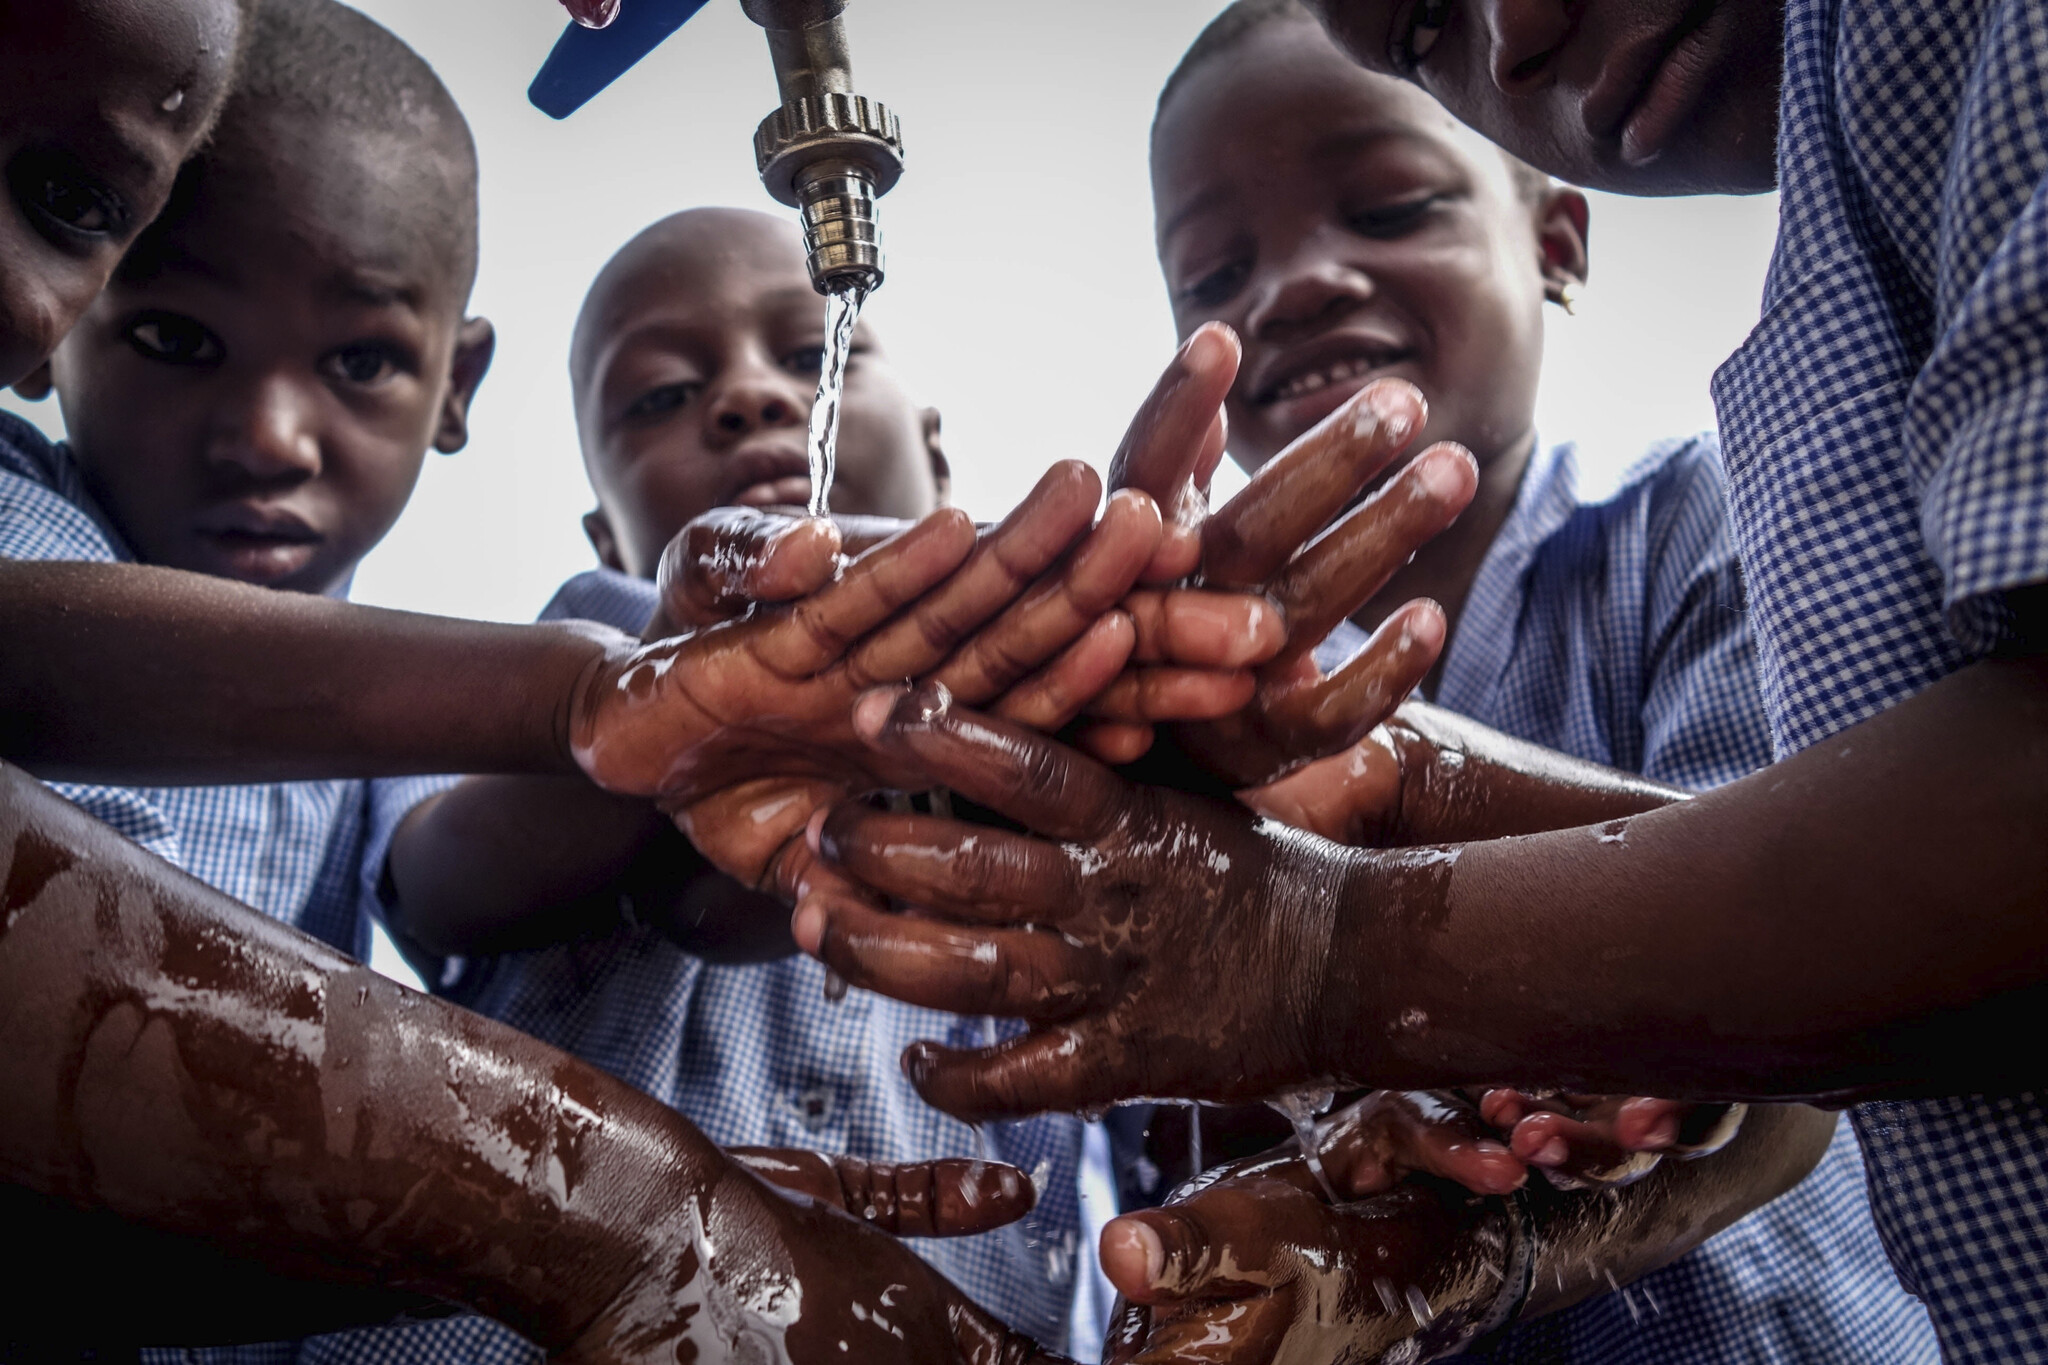 Boys washing hands under outdoor faucet, Jake Meyers, Peace Corps Benin